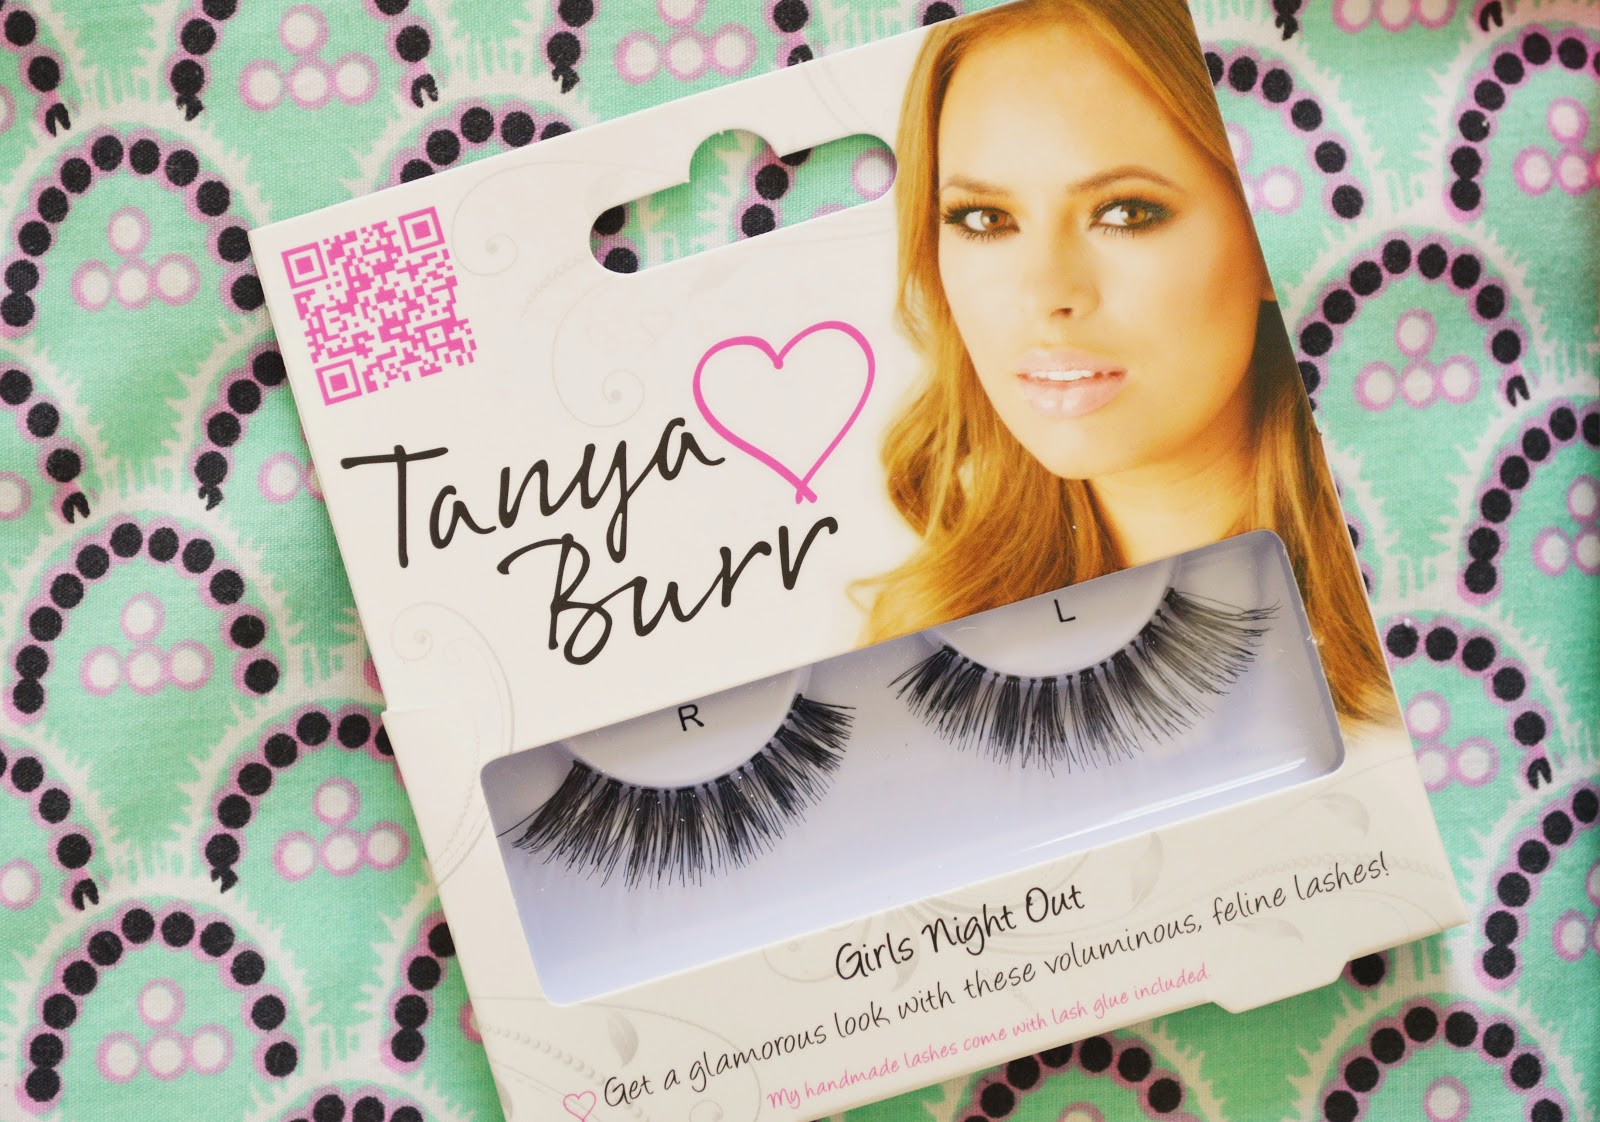 Tanya Burr Girls Night Out Fake Eyelashes